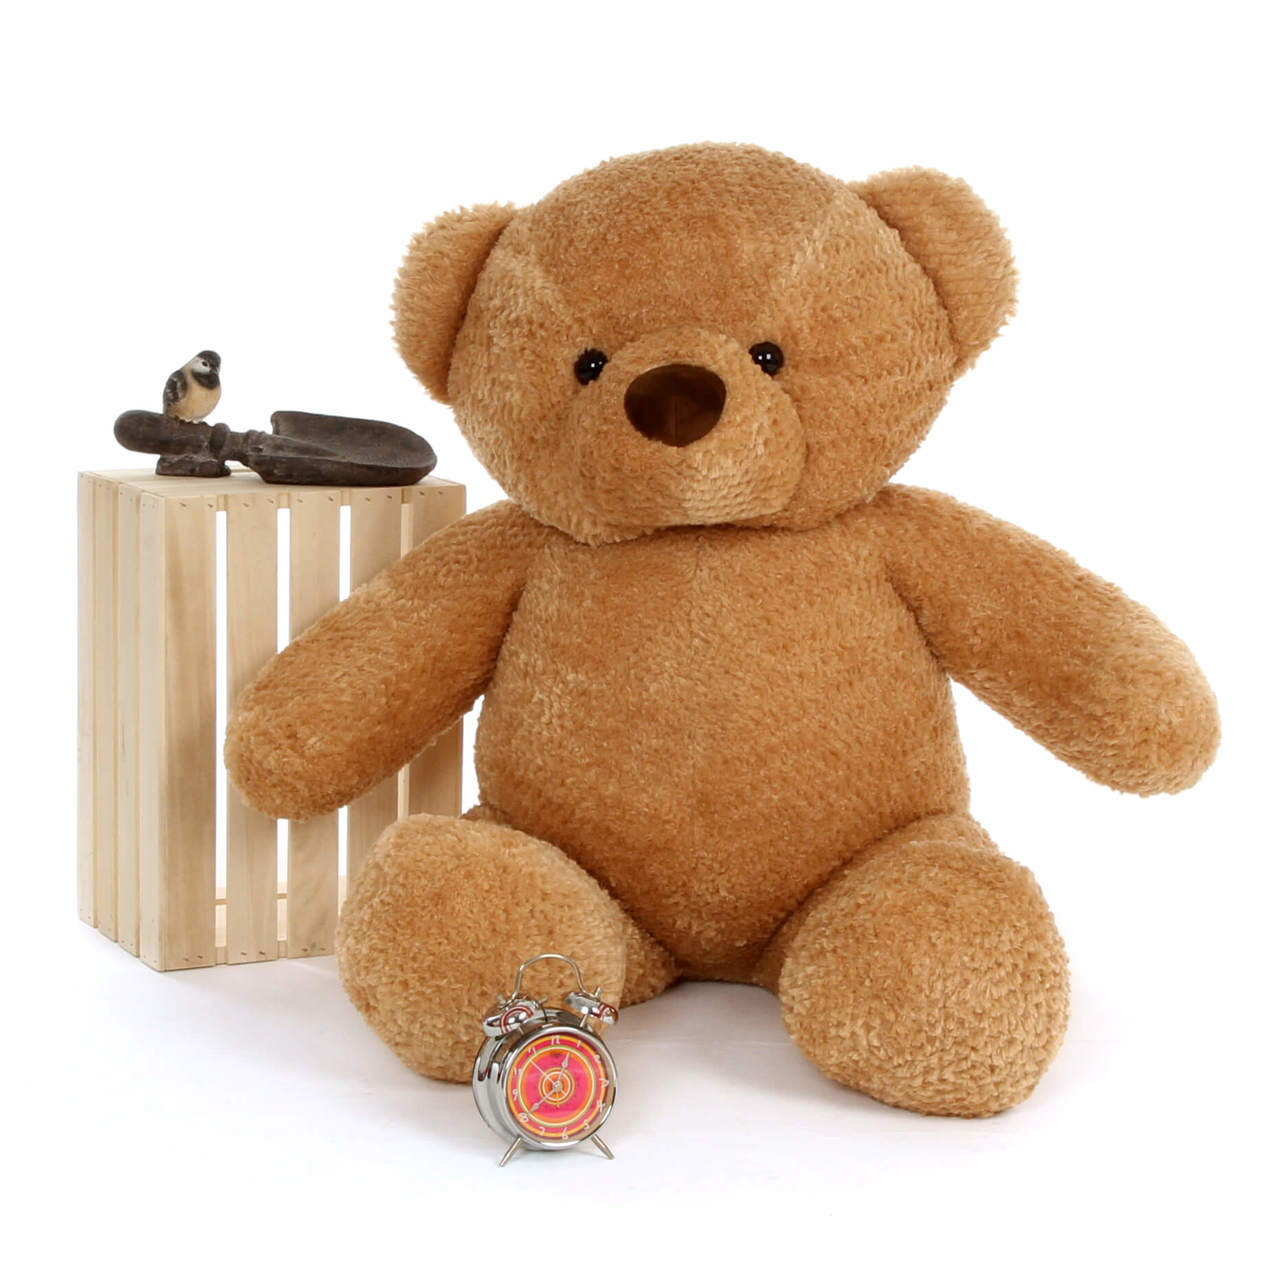 Big Amber Teddy Bear Cutie Chubs 48in